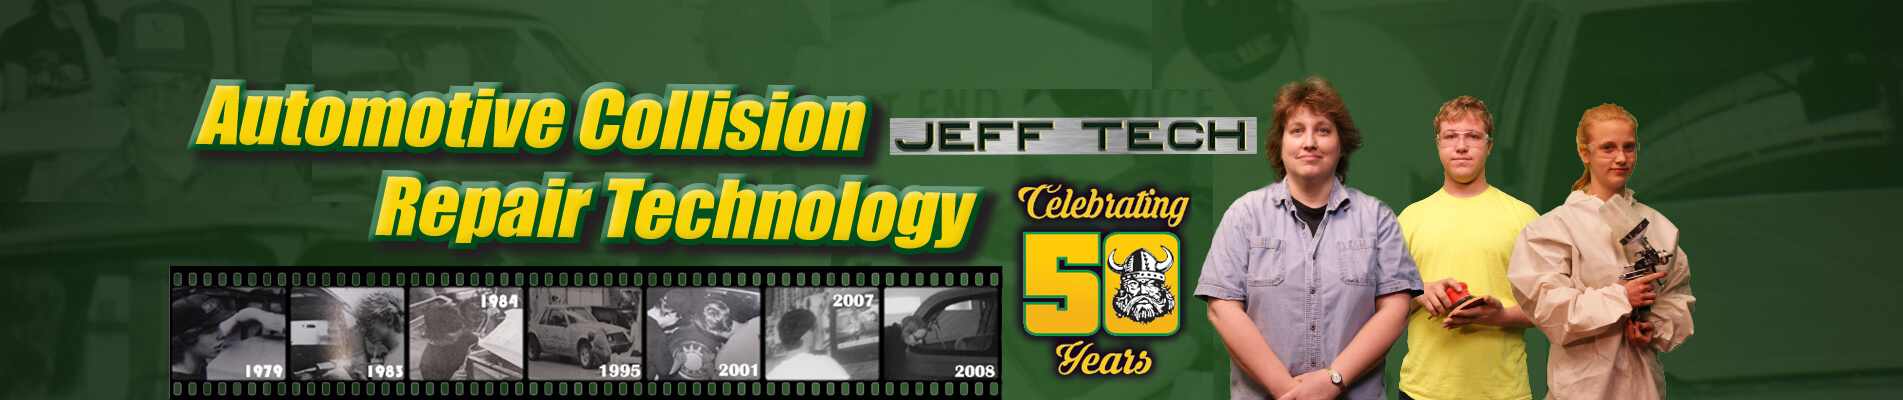 Jeff Tech Celebrating 50 Years. Automotive Collision Repair Technology. Learn more about our CTE Programs.